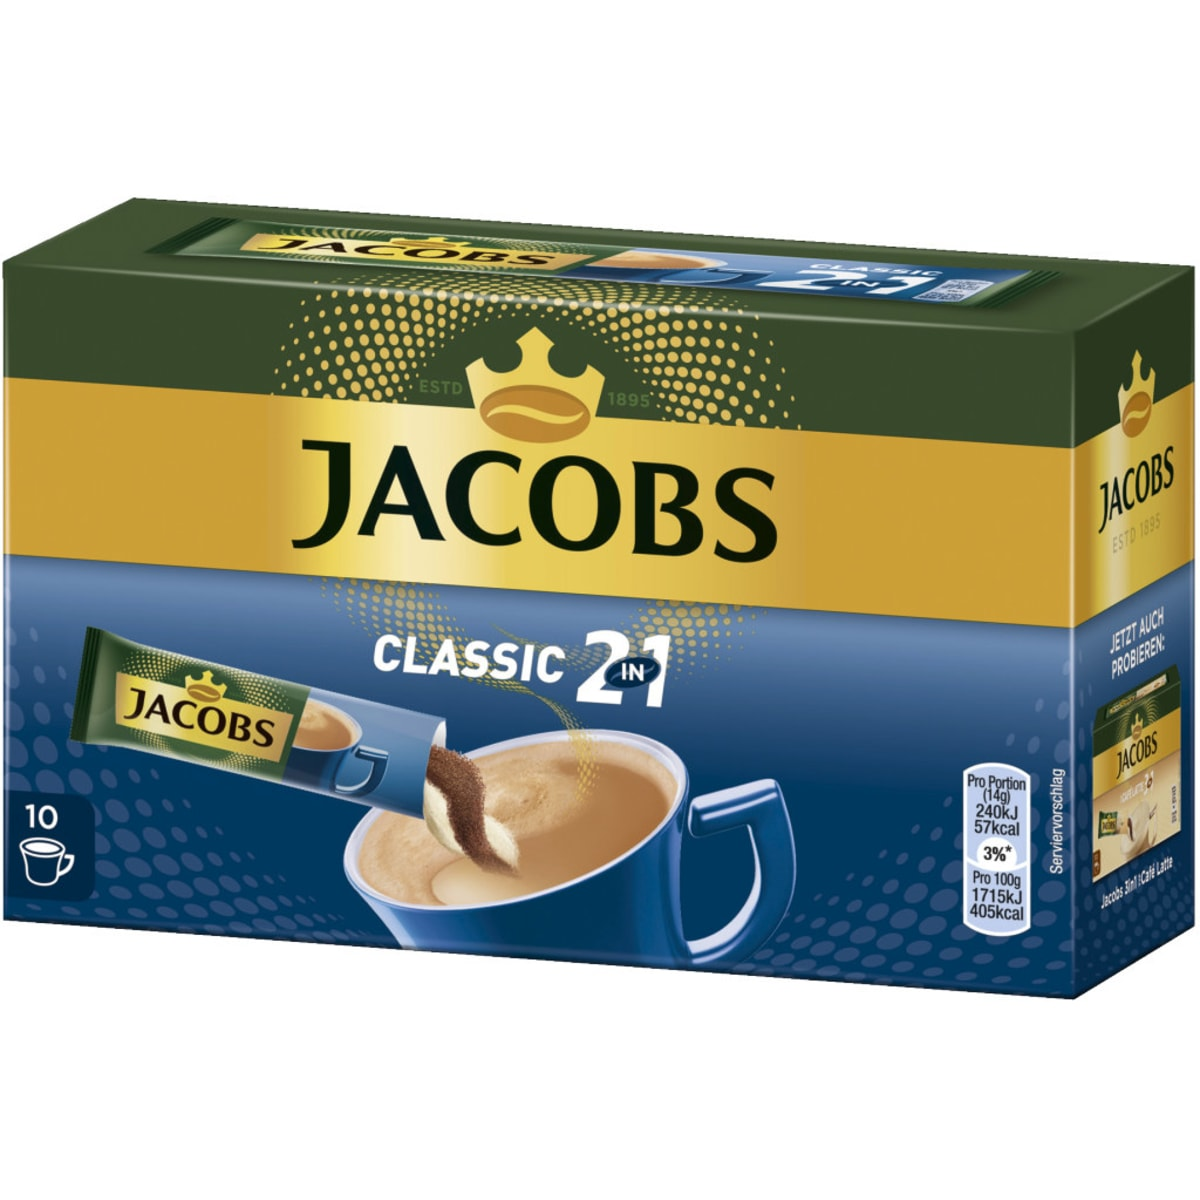 Jacobs 2in1 10 Sticks